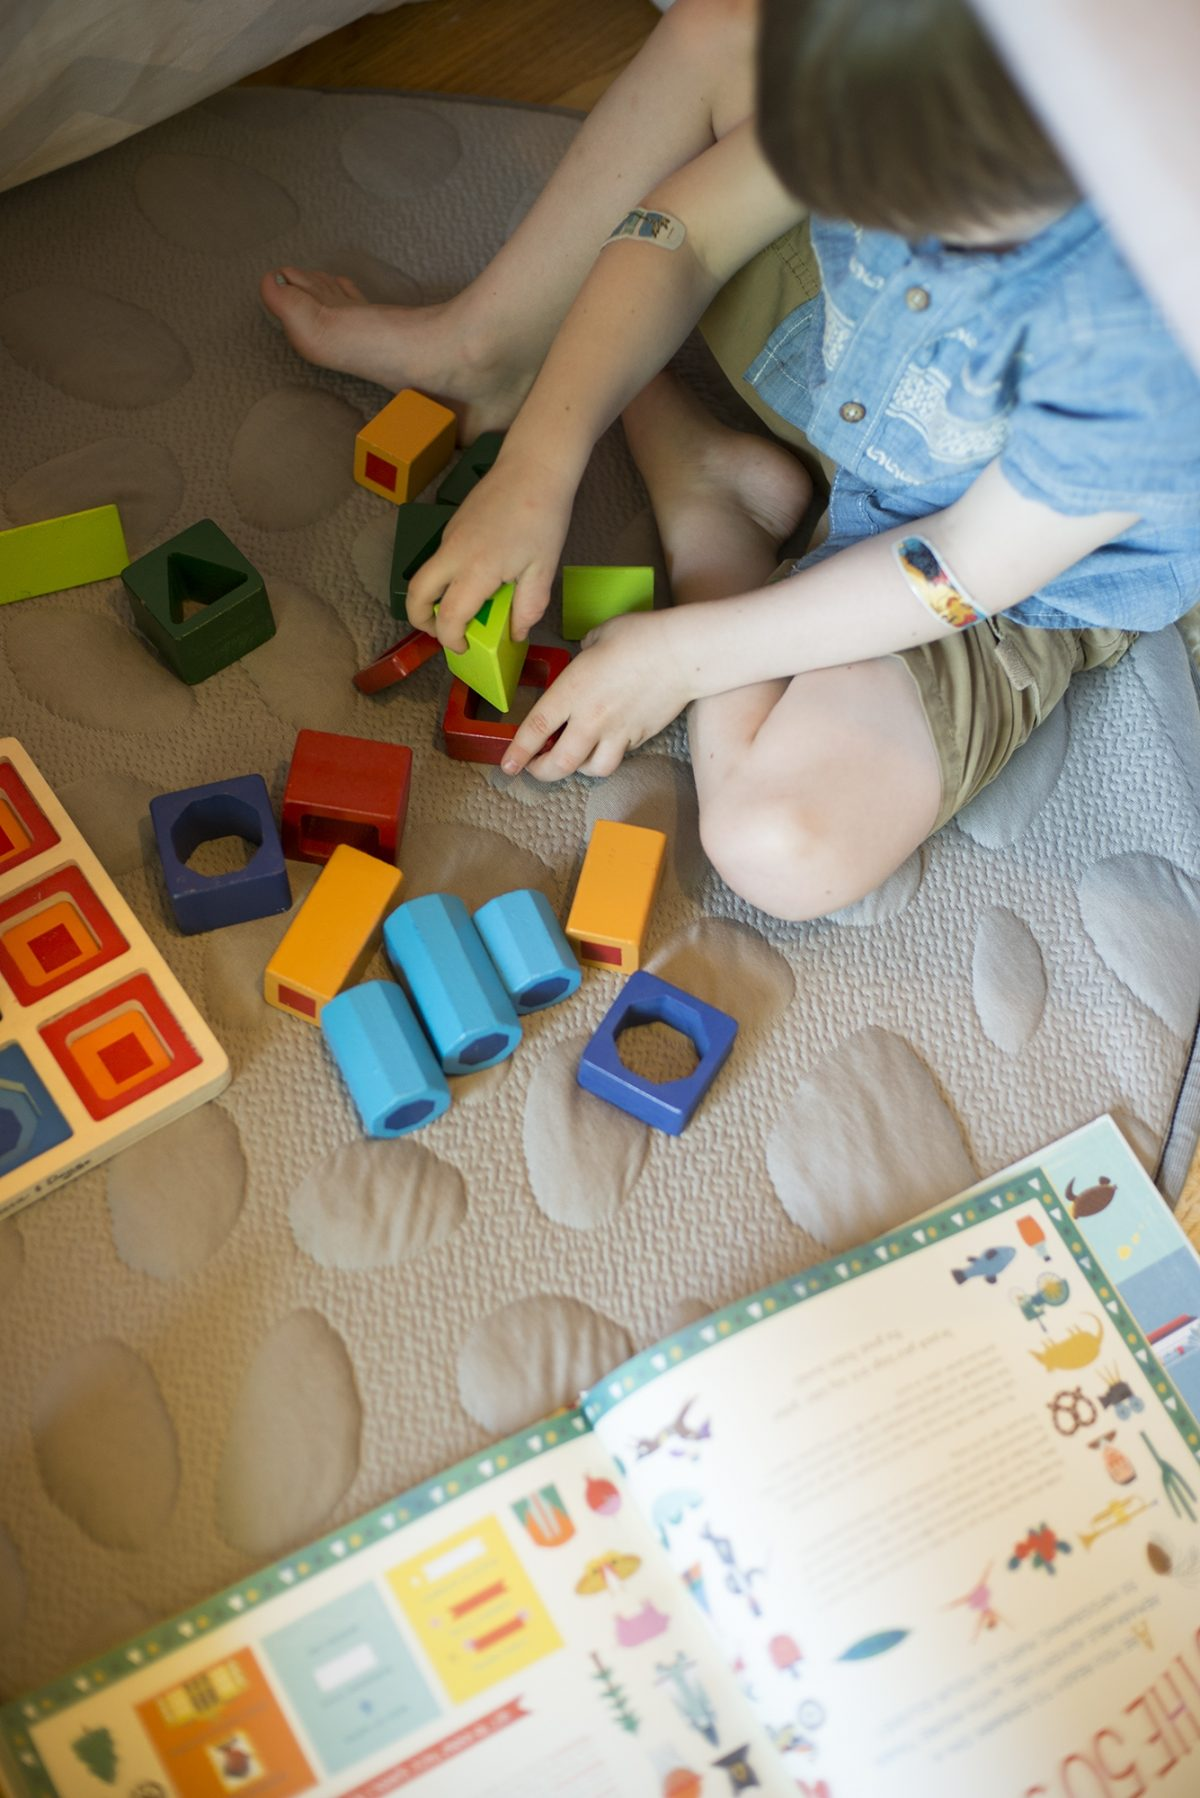 Nook Baby Products - Nook Non-Toxic LilyPad Playmat - Boy playing with blocks.jpg